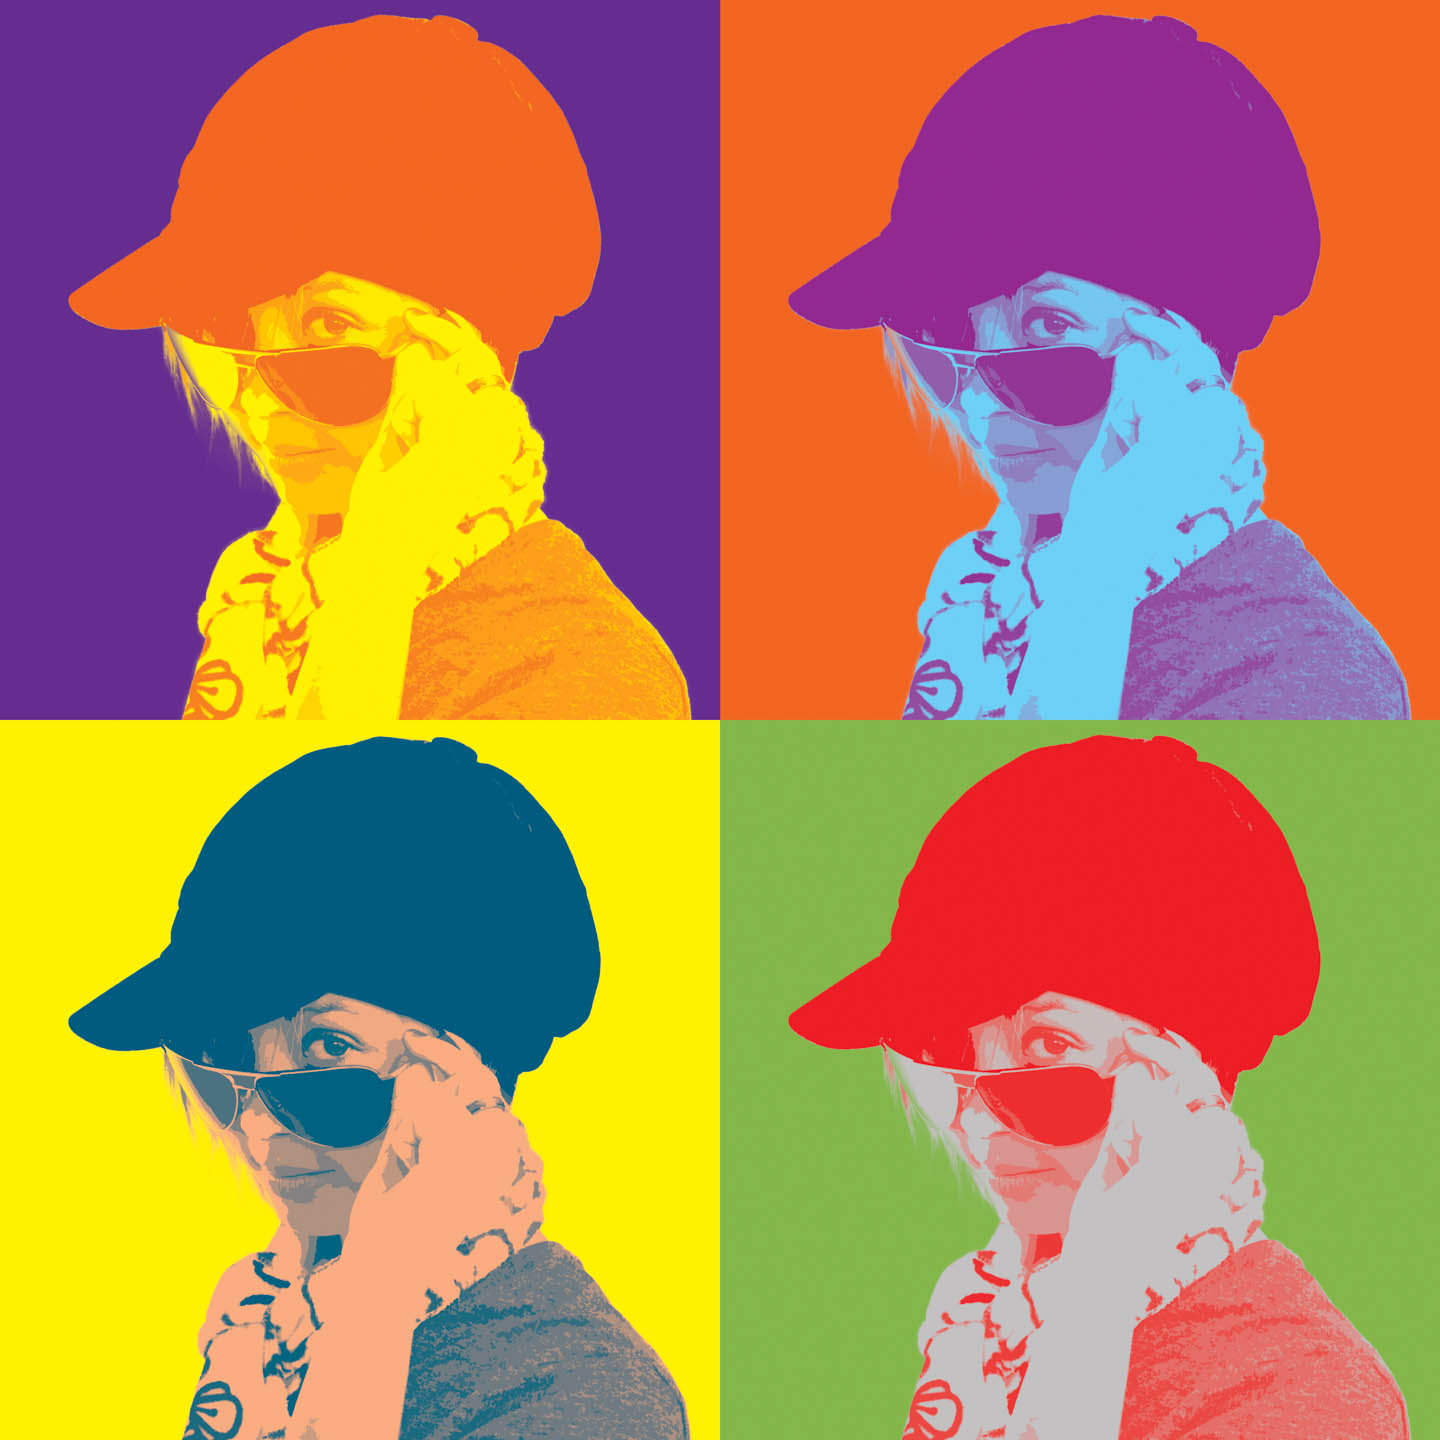 Andy Warhol style photograph